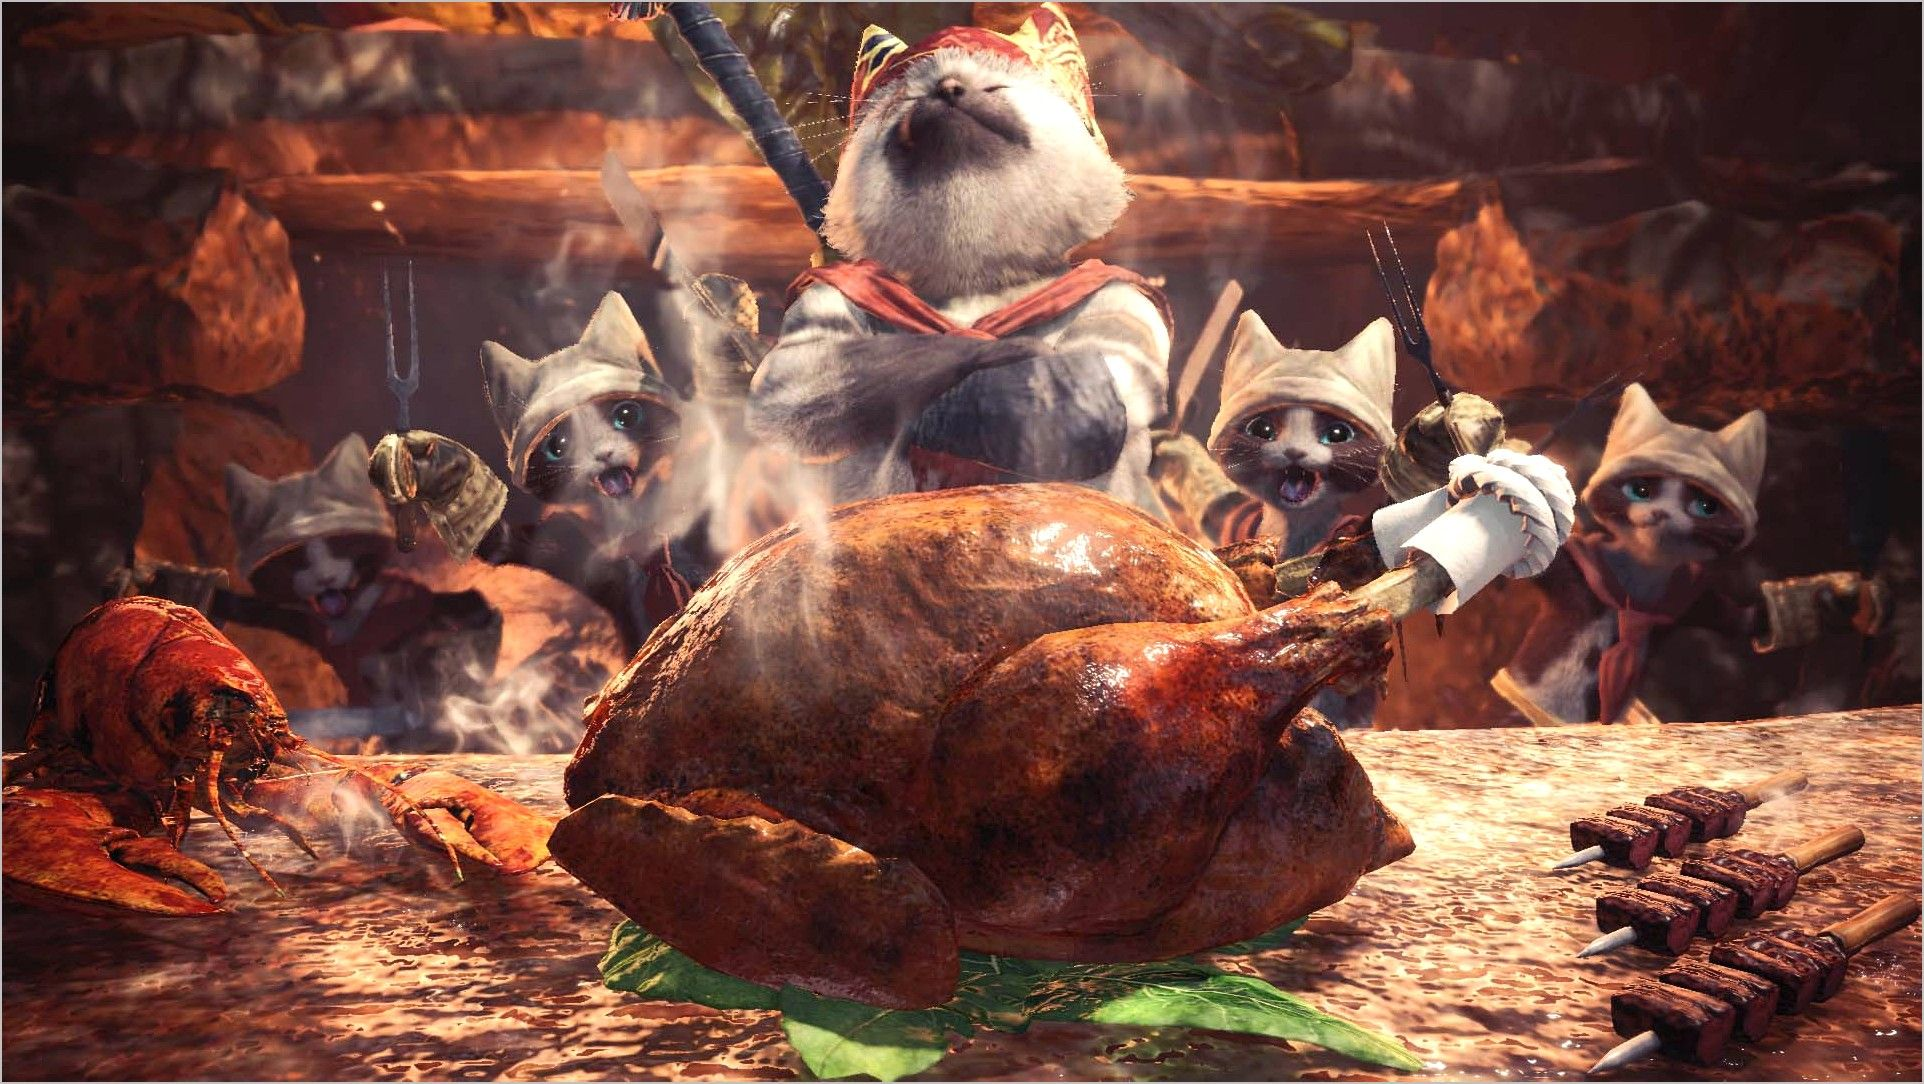 Monster Hunter World 4k Wallpaper Palico In 2020 Monster Hunter Monster Hunter World Monster Hunter Series